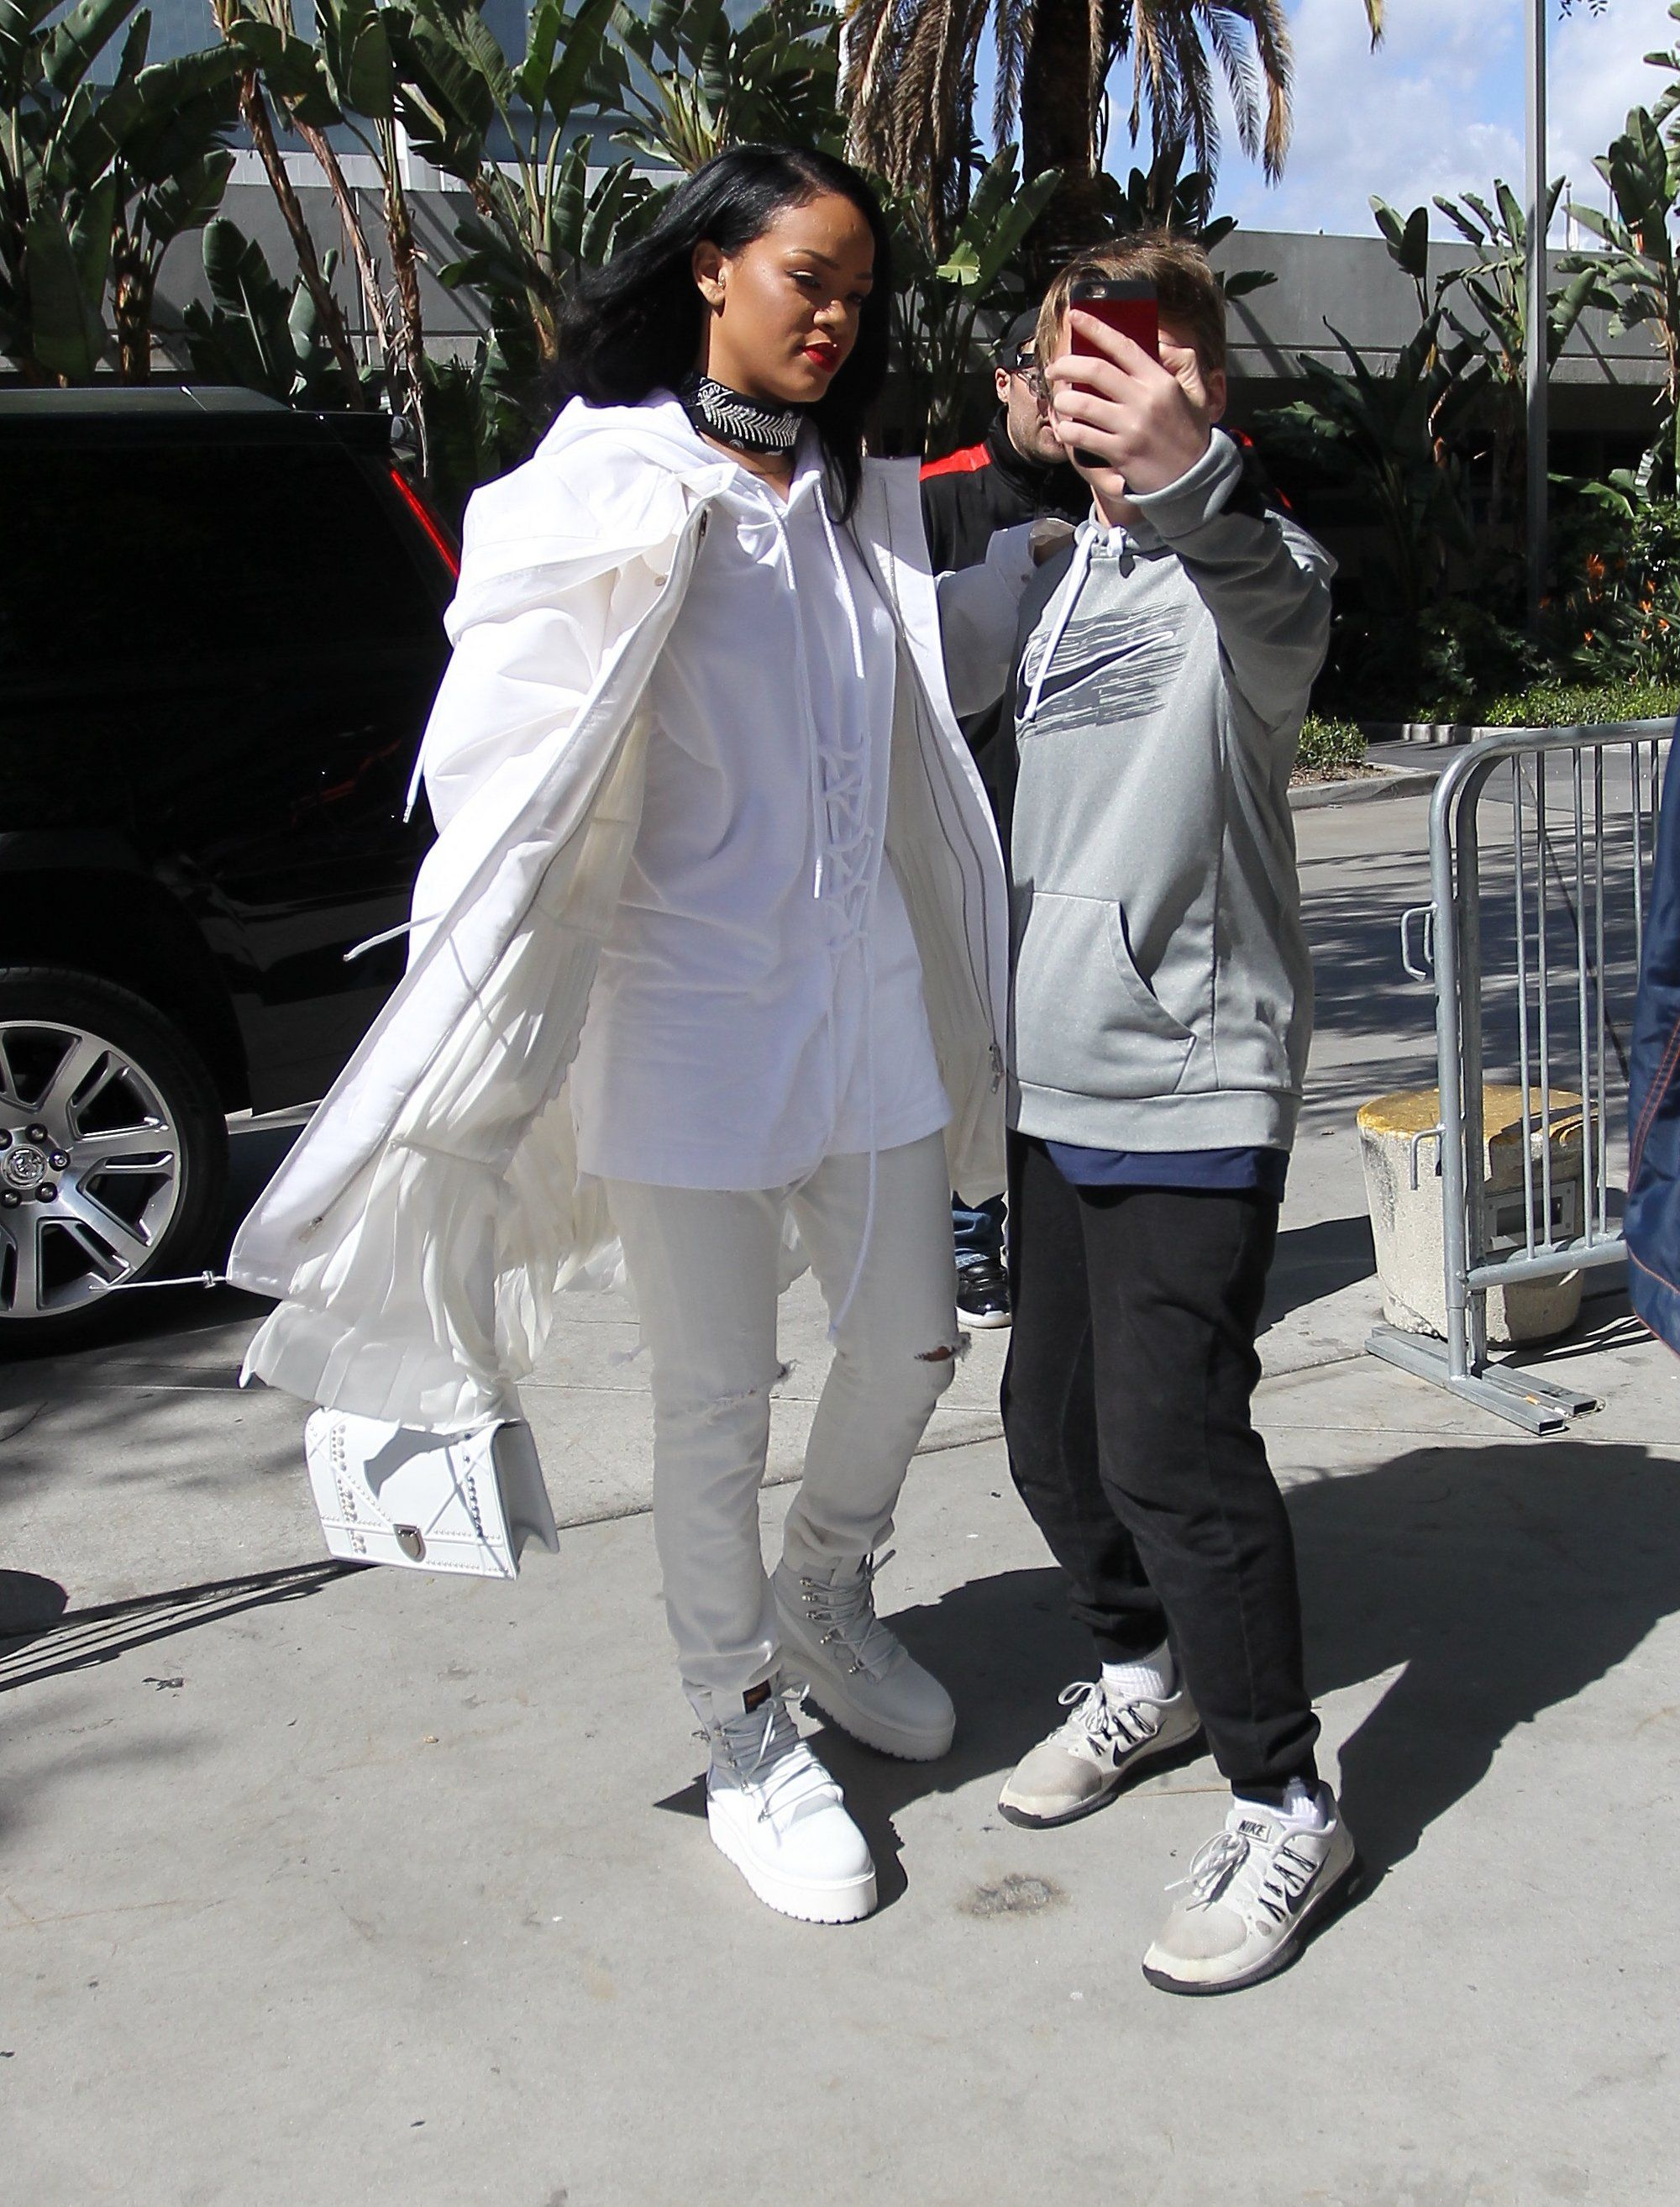 Rihanna Gives Winter White a Streetwise New Look